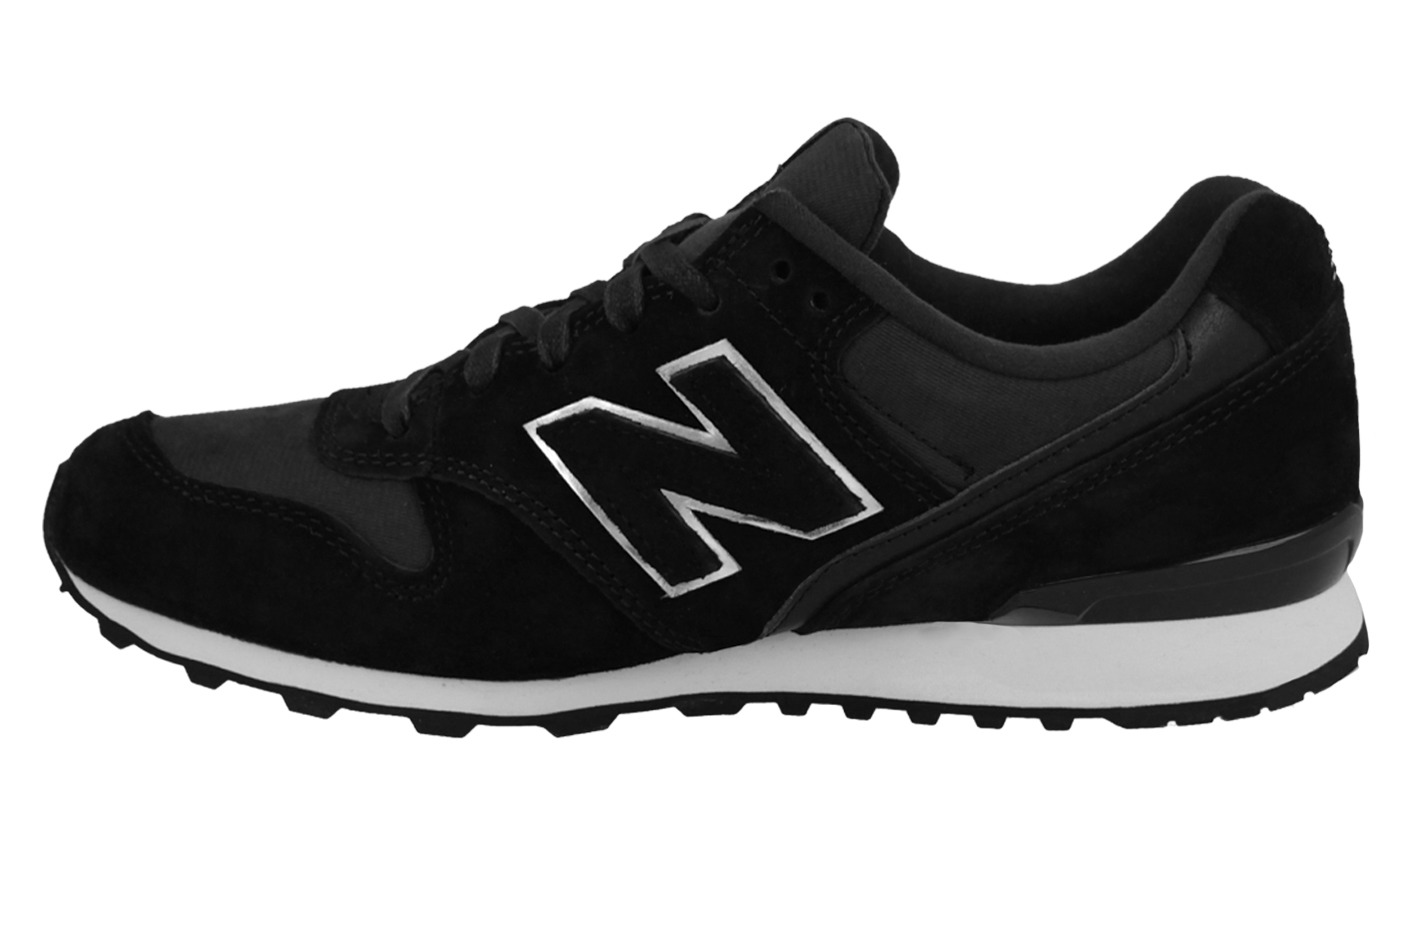 http://yessport.pl/pol_pl_BUTY-LIFESTYLE-NEW-BALANCE-WR996EF-7349_3.jpg